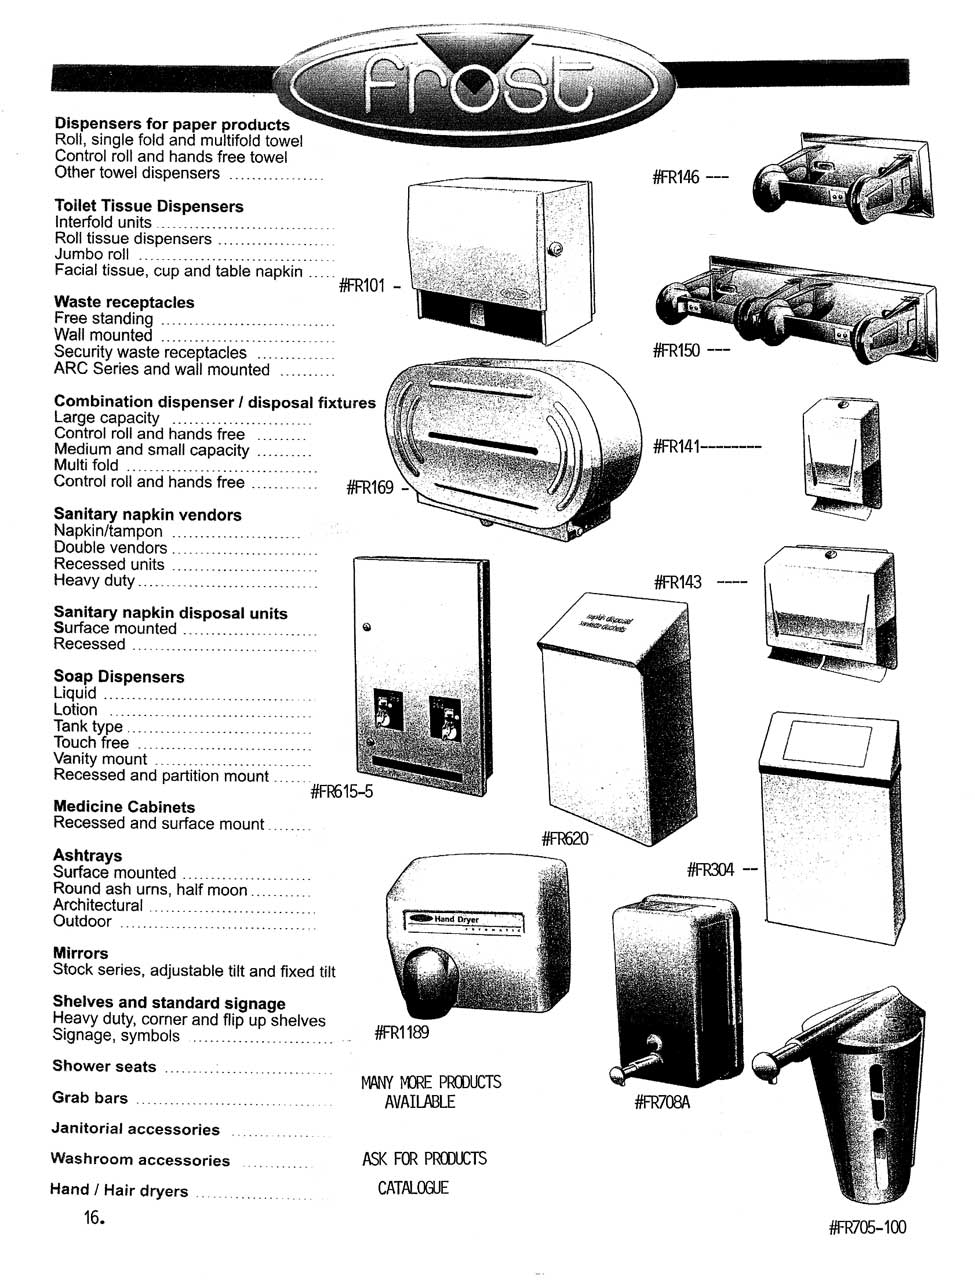 Frost Dispensers And Washroom Accessories Toilet